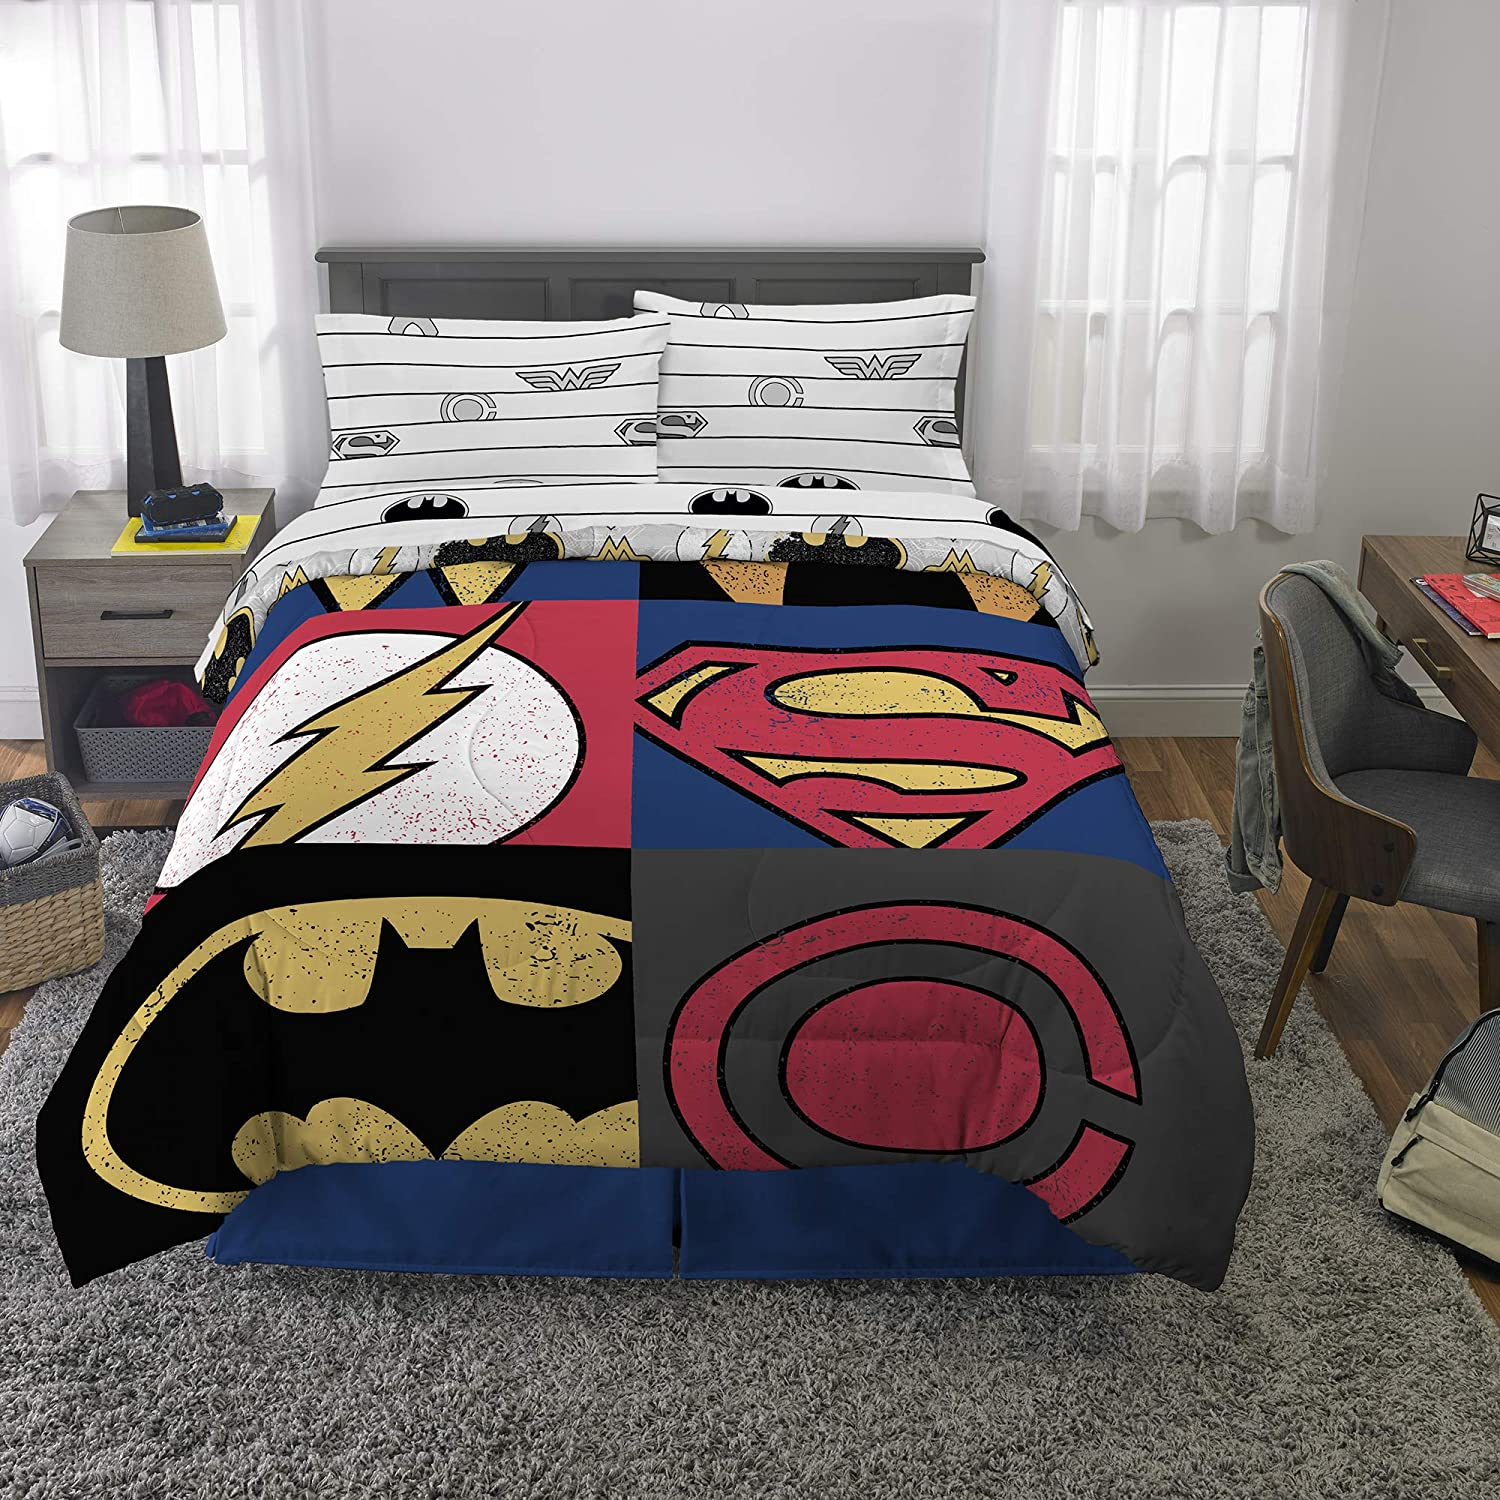 Franco Kids Bedding Super Soft Microfiber Comforter and Sheet Set, 5 Piece Full Size, Justice League